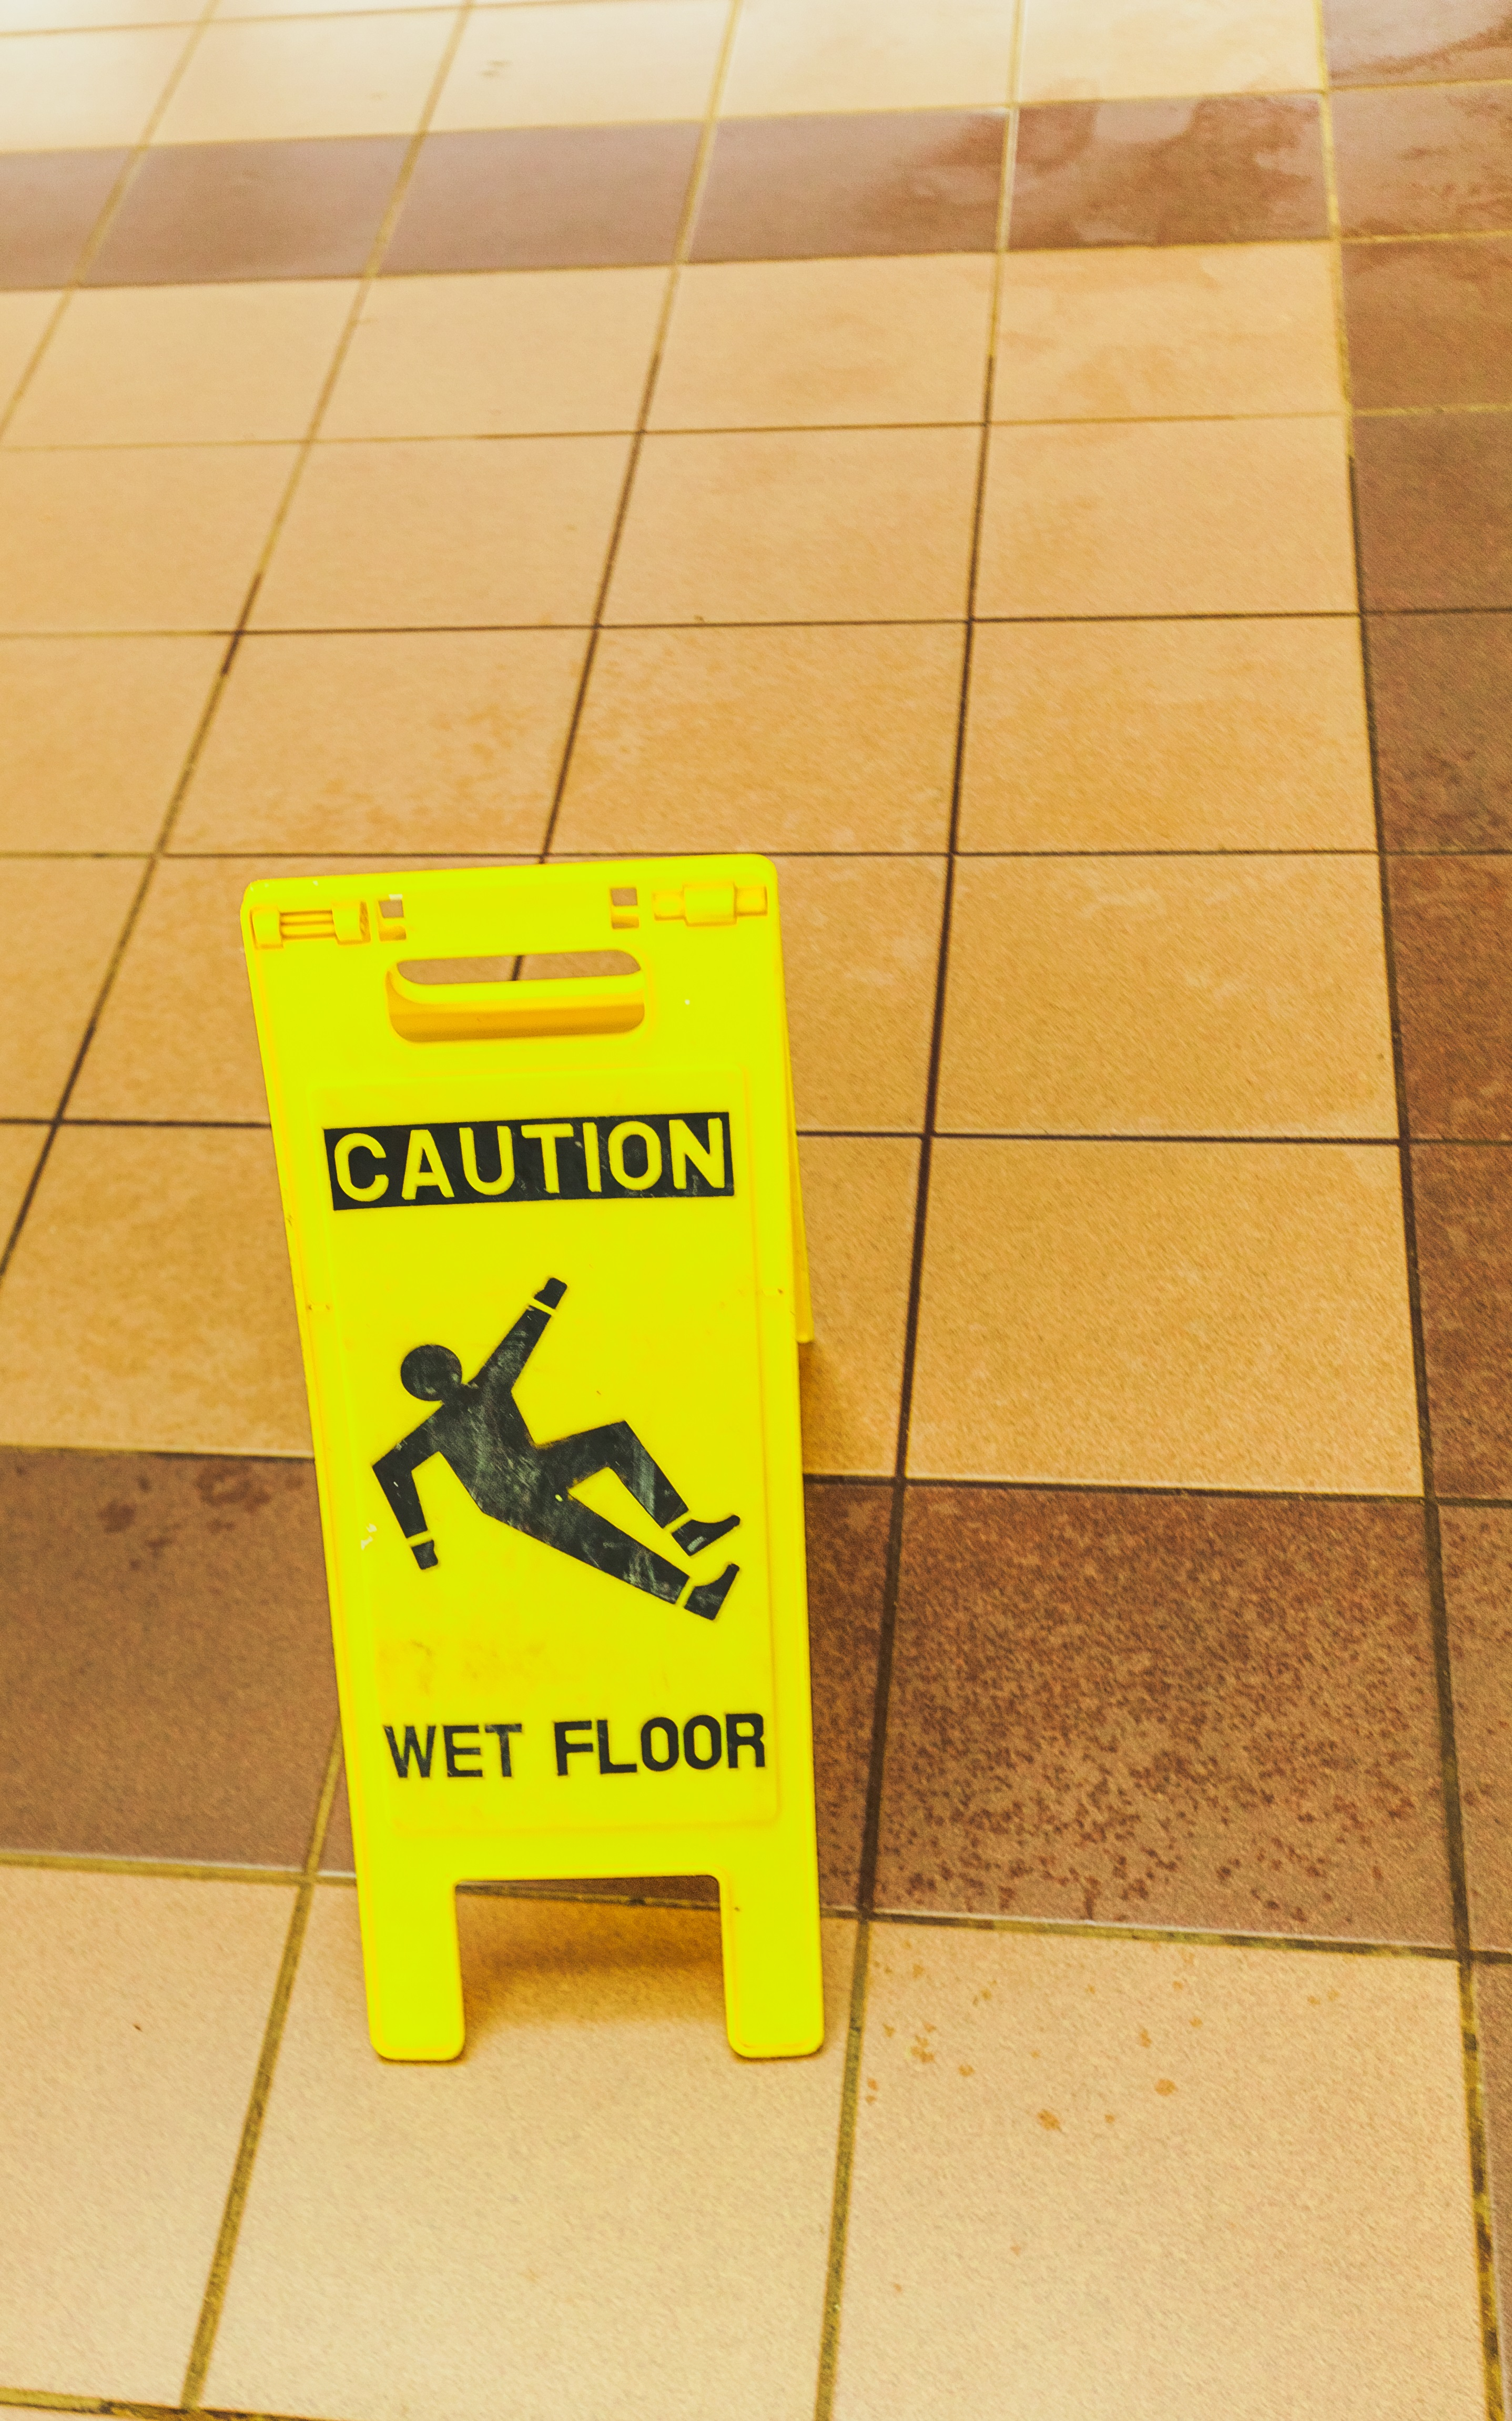 Best Ways to Prevent Slip and Fall Injuries